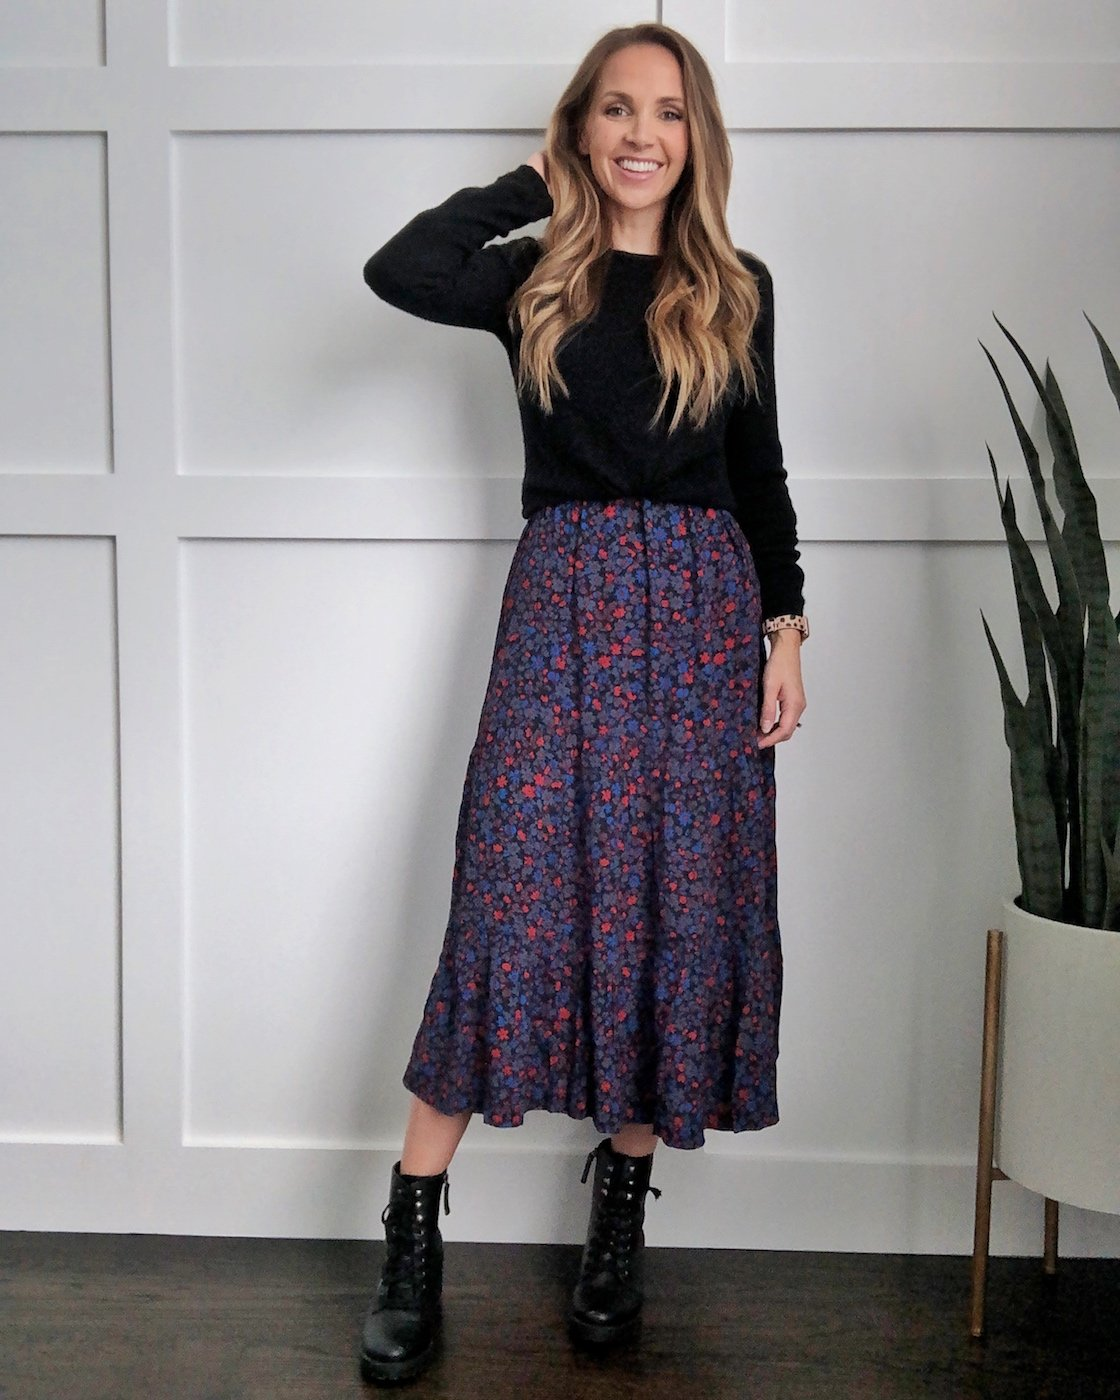 How to wear a midi dress combat boots and sweater